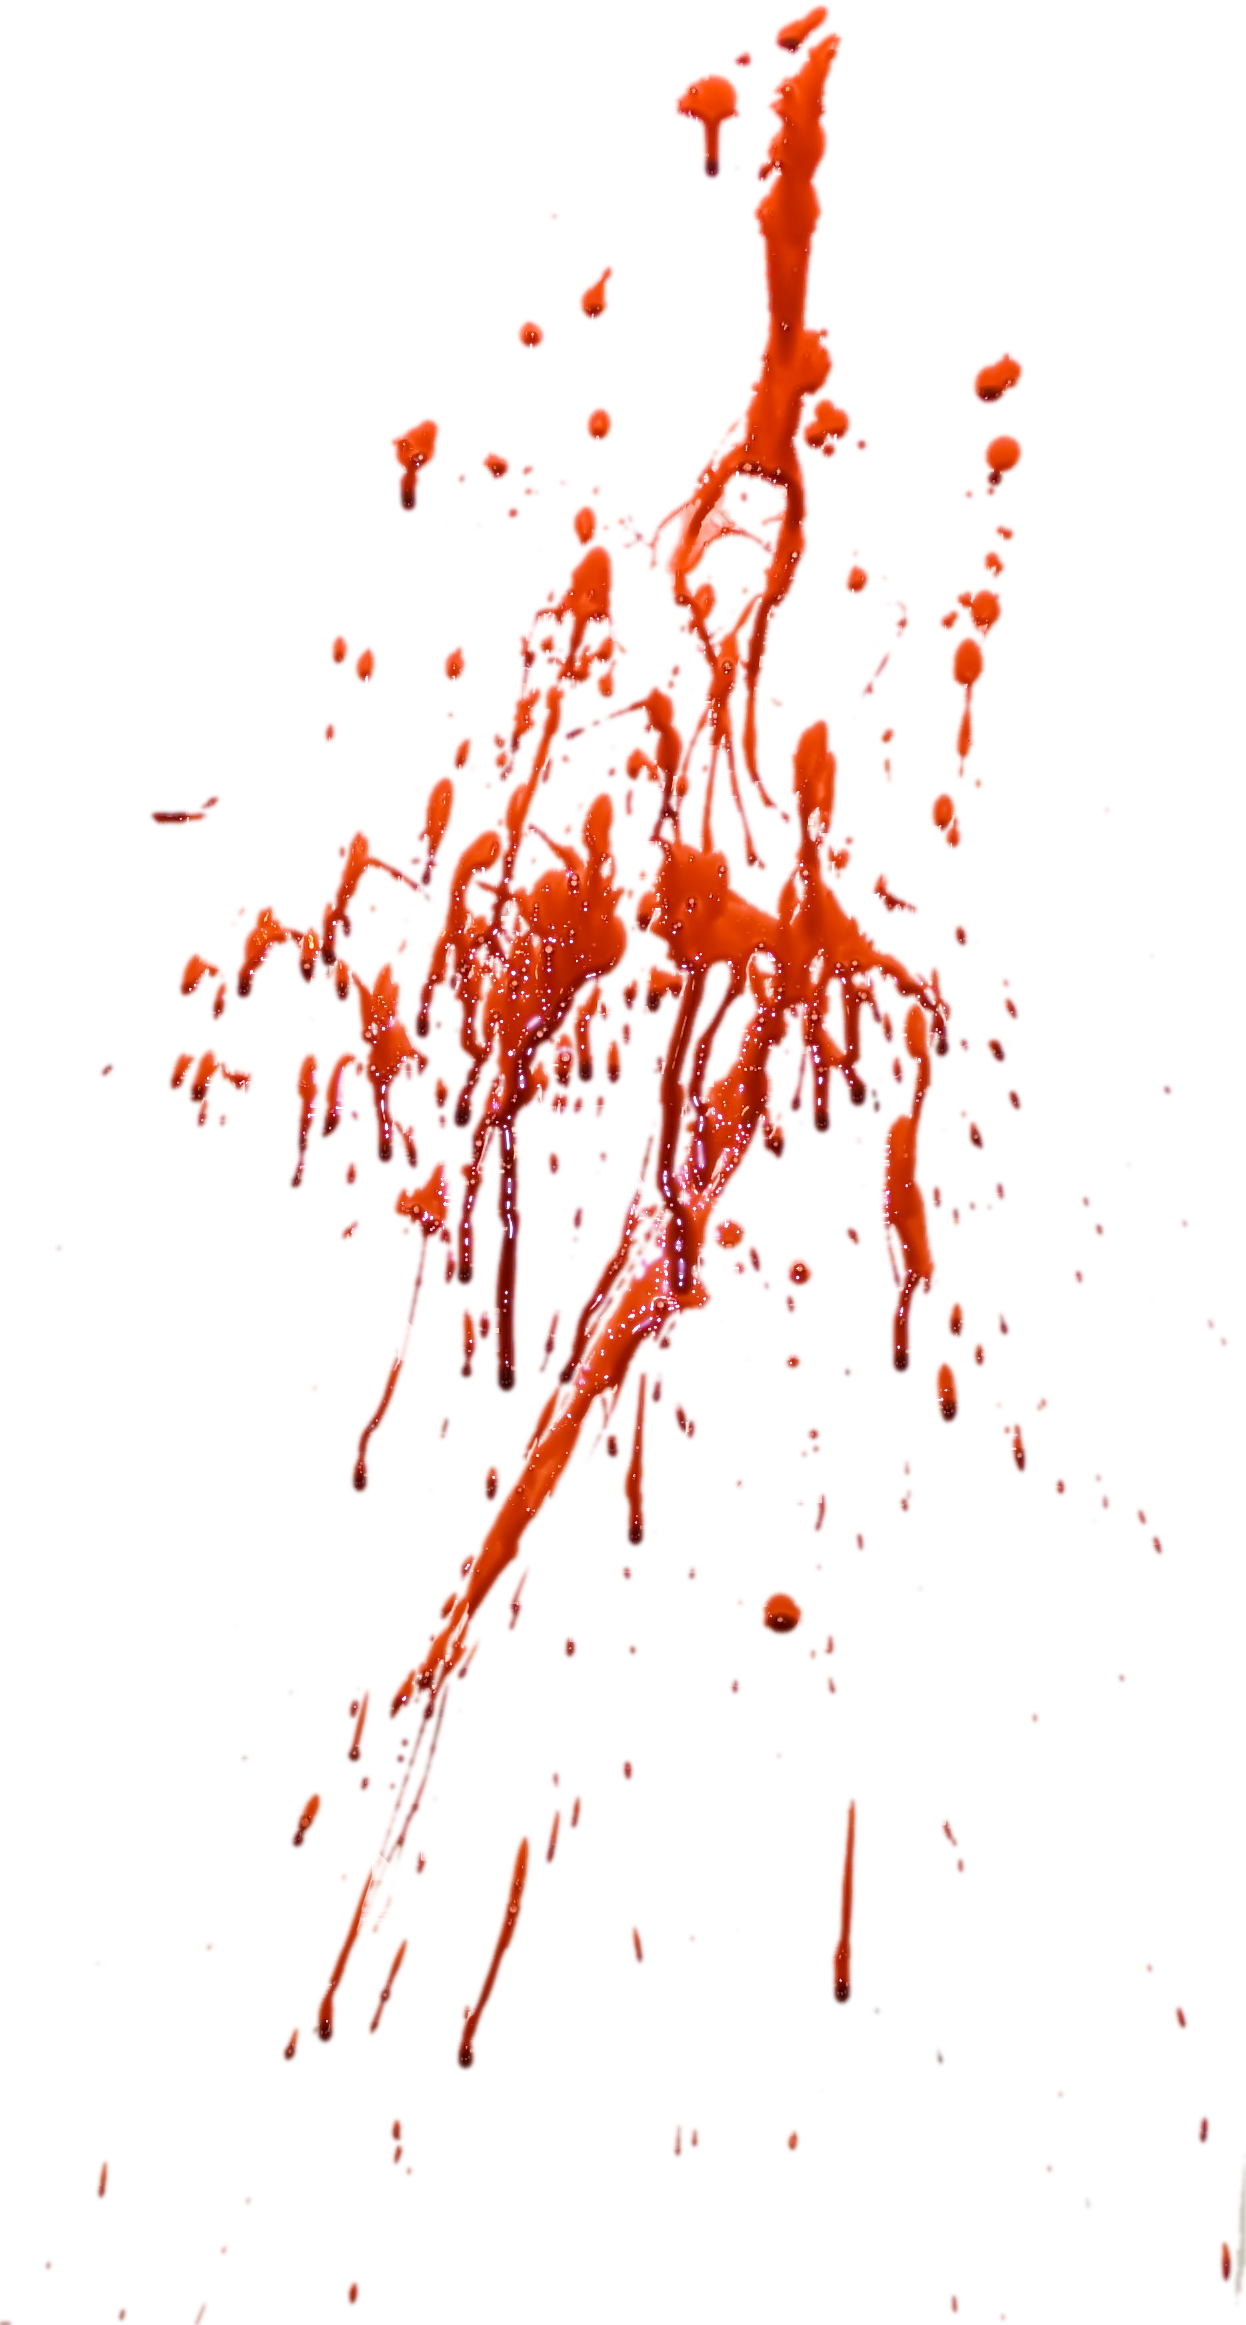 Dried blood png. Images free download splashes